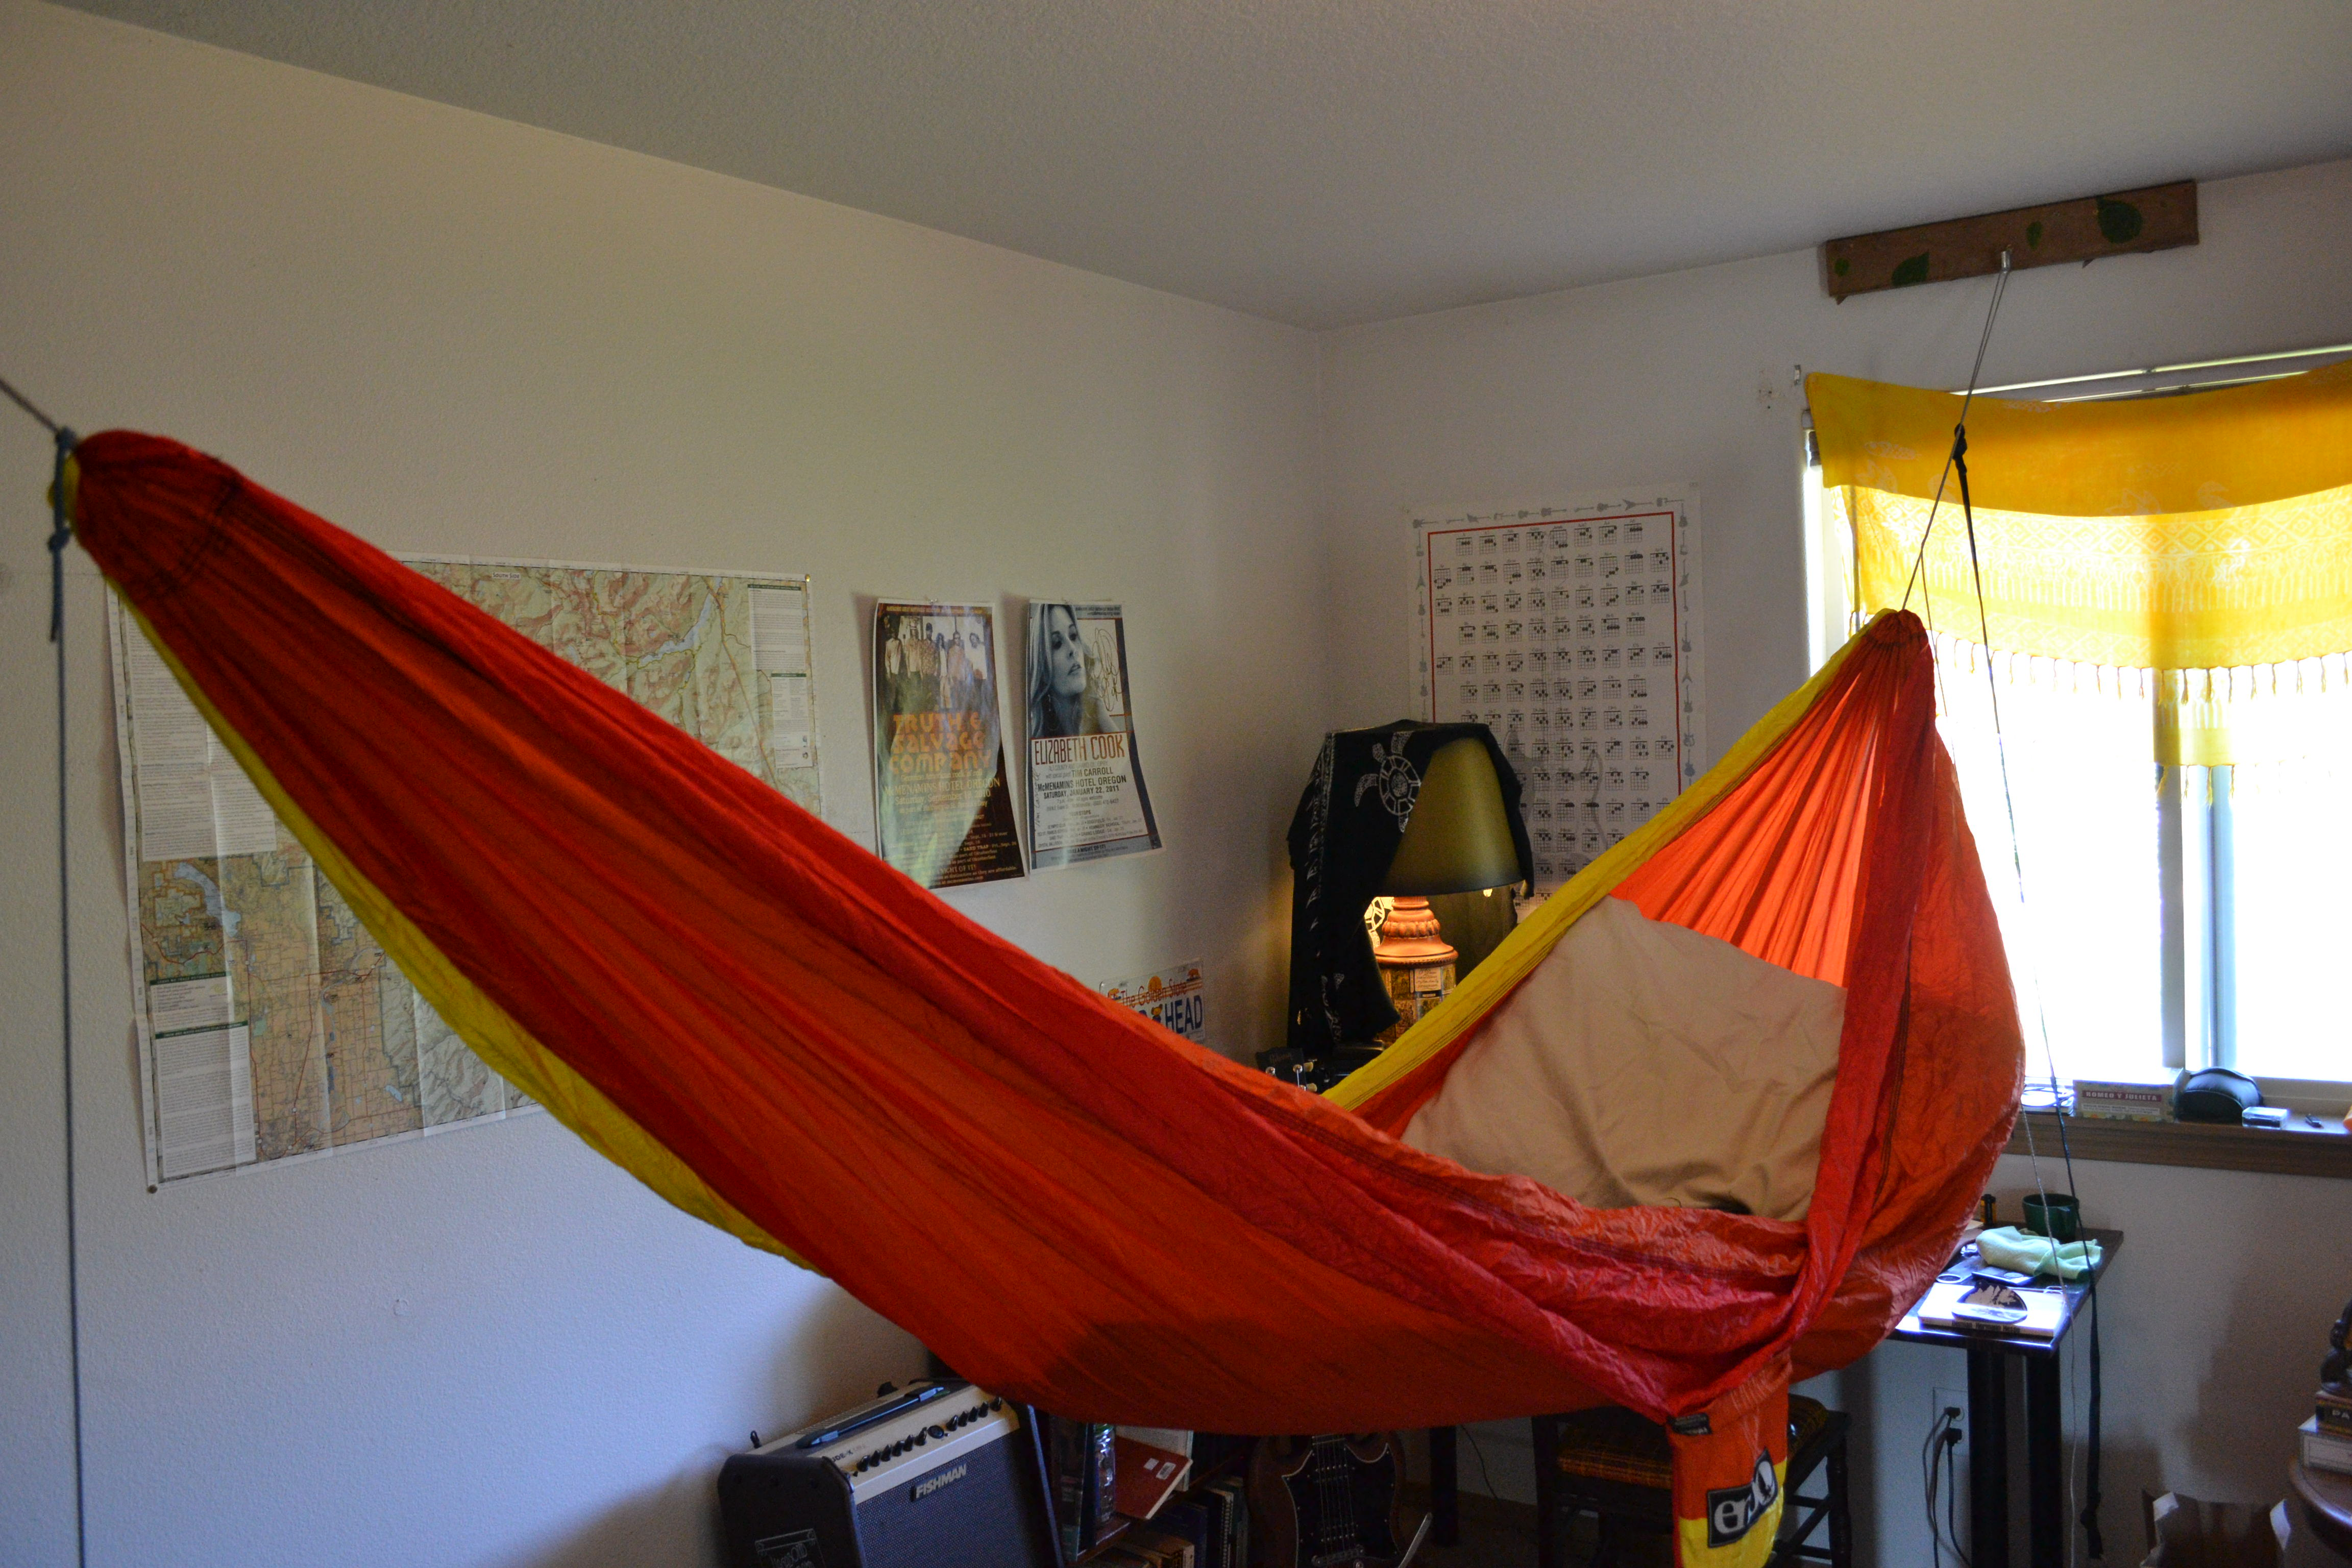 Hang your hammock indoors